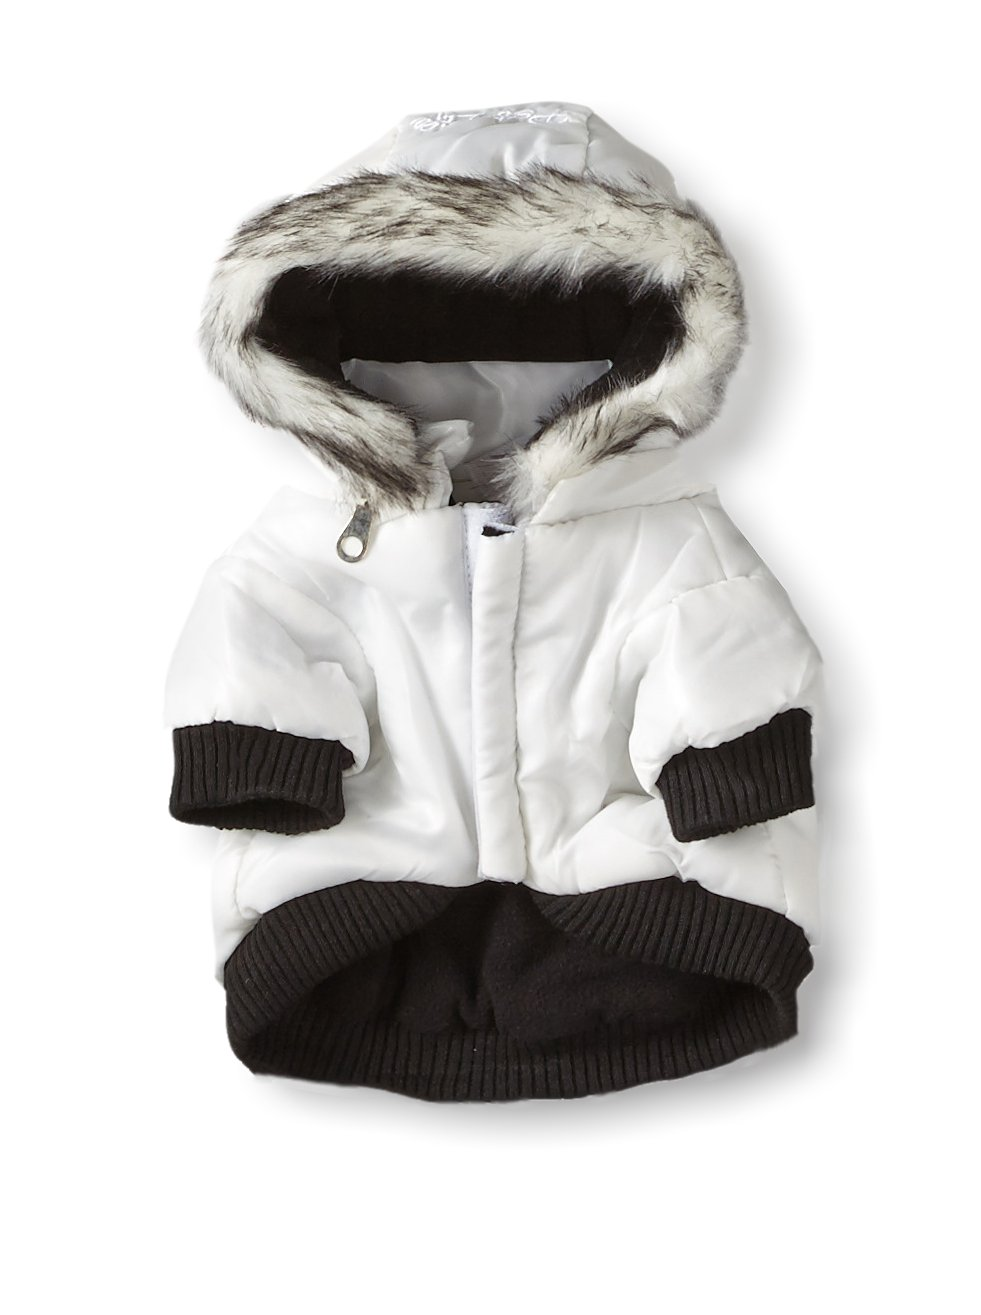 Pet Life DPF00203 Metallic Ski Parka Dog Coats with Removable Hood, Small, White by Pet Life